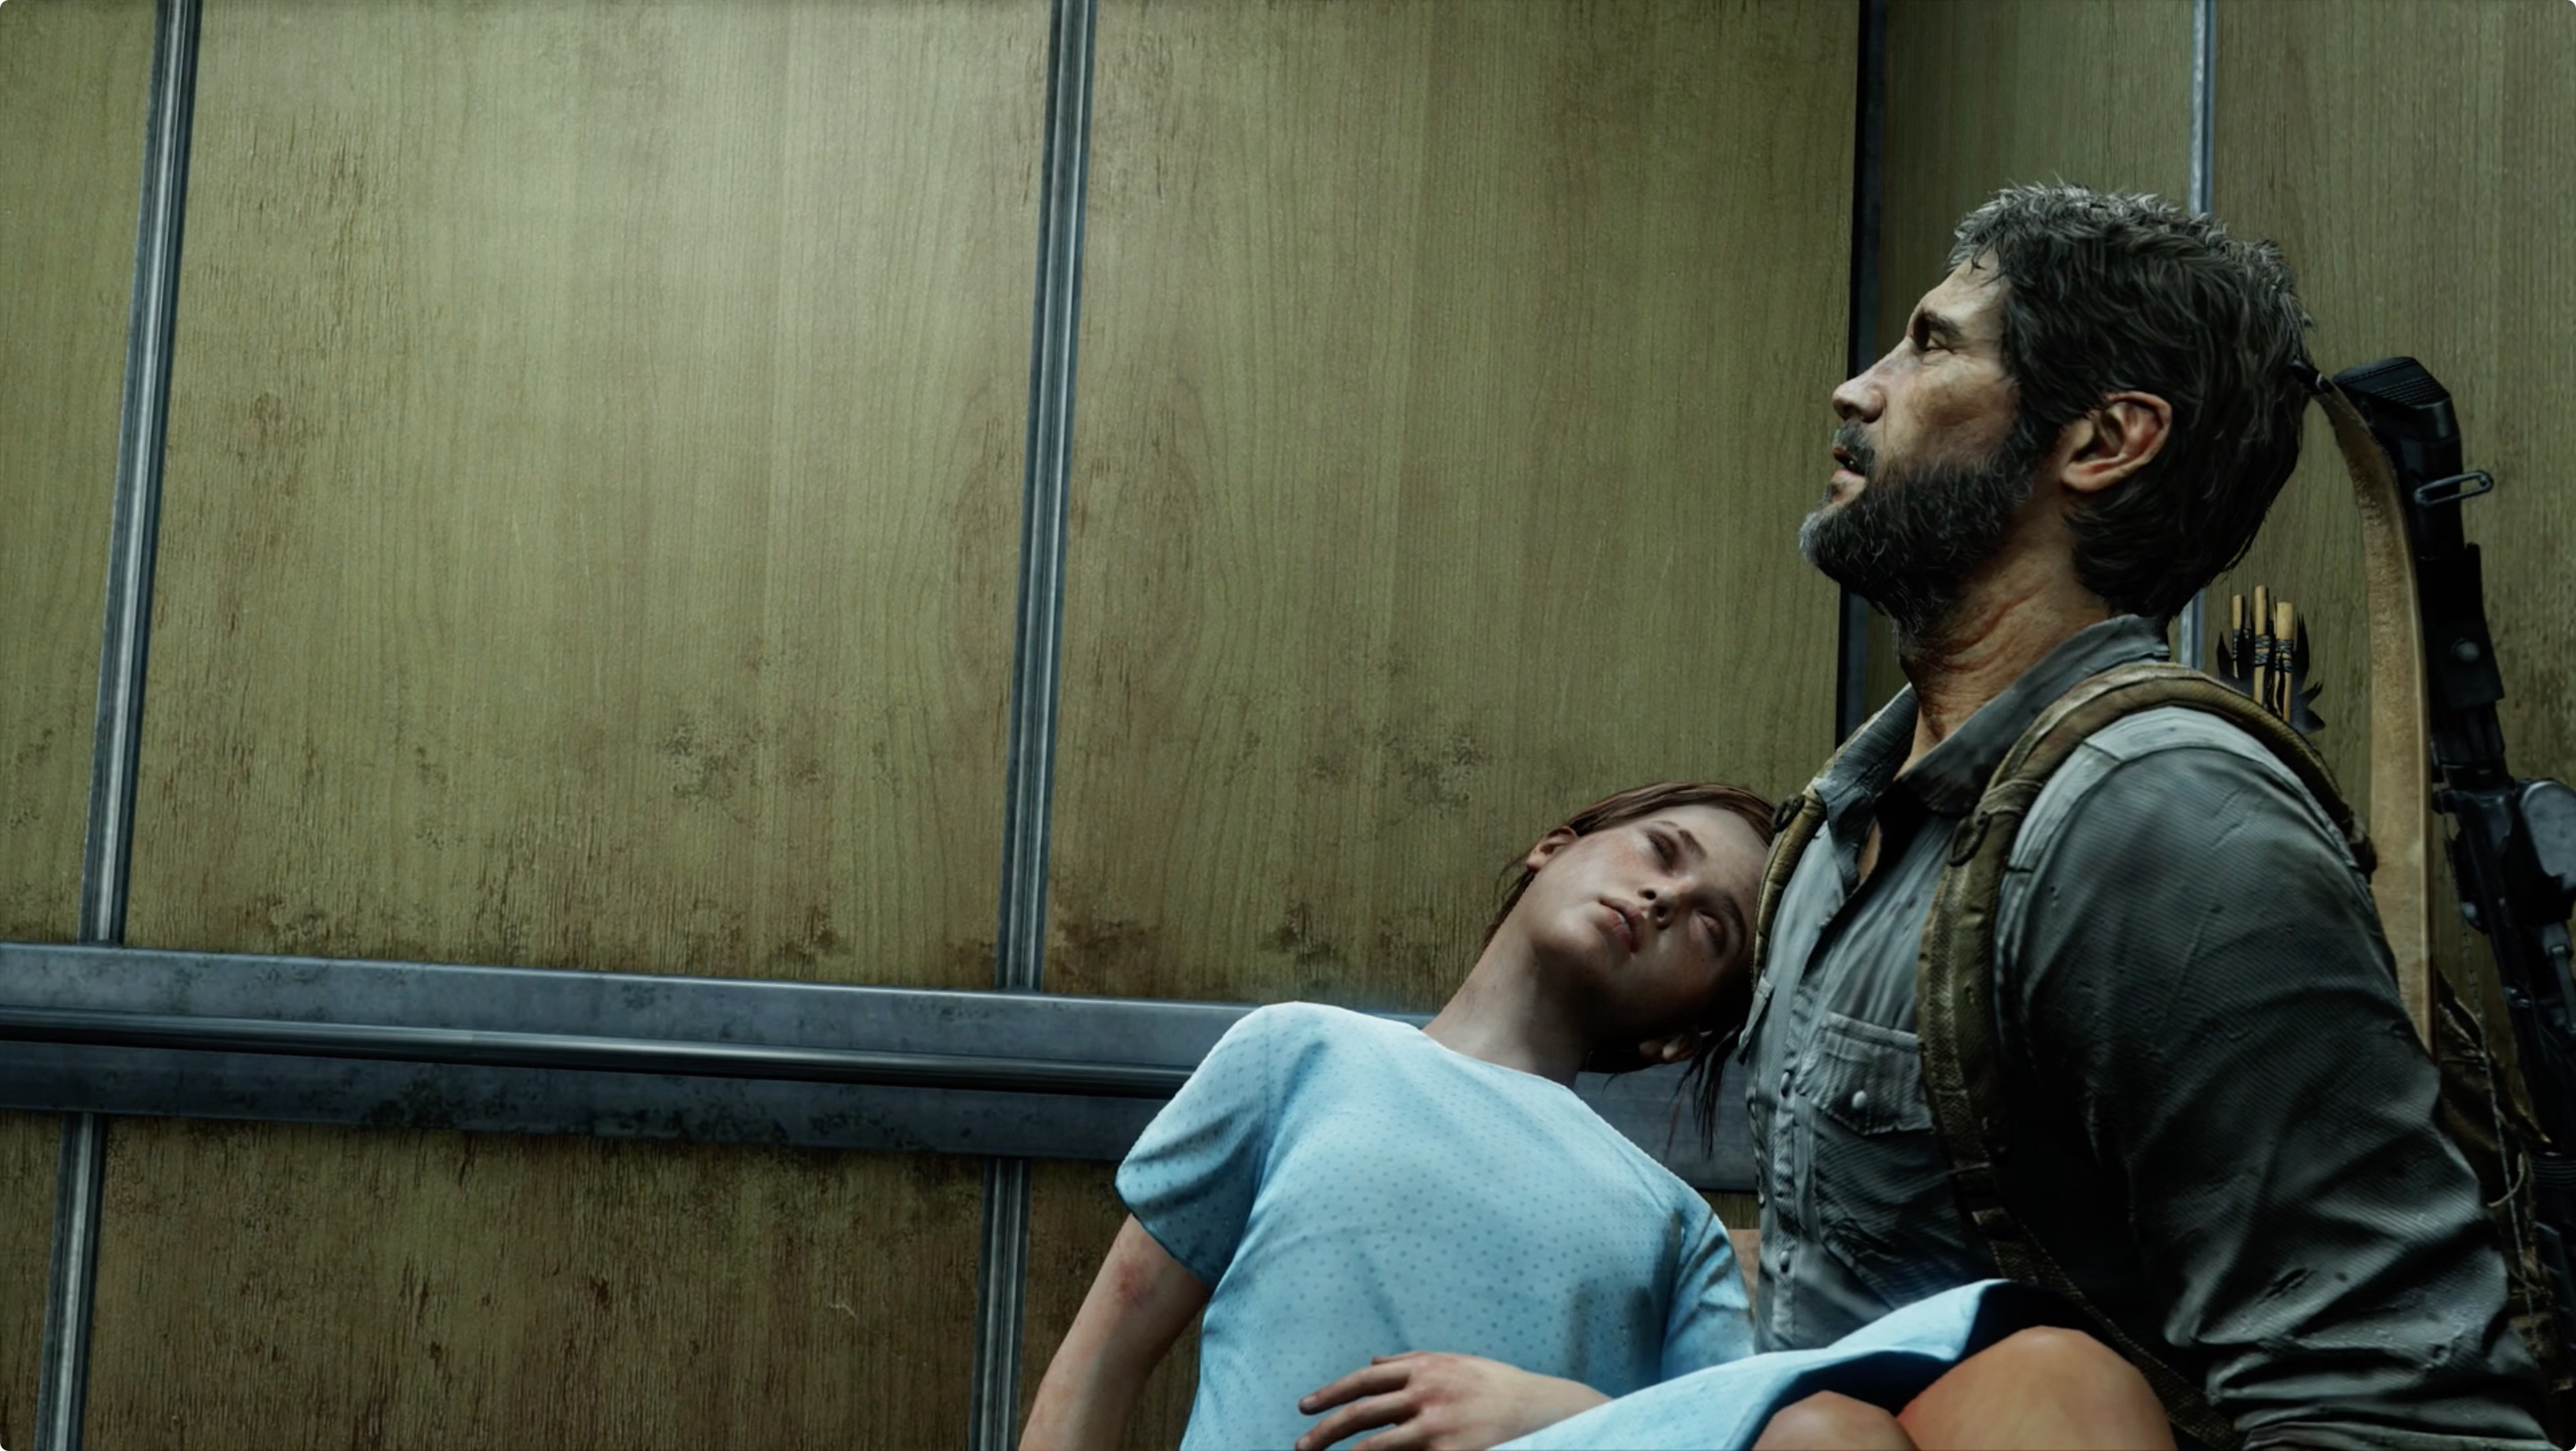 The Last of Us 'The Firefly Lab' collectibles locations guide